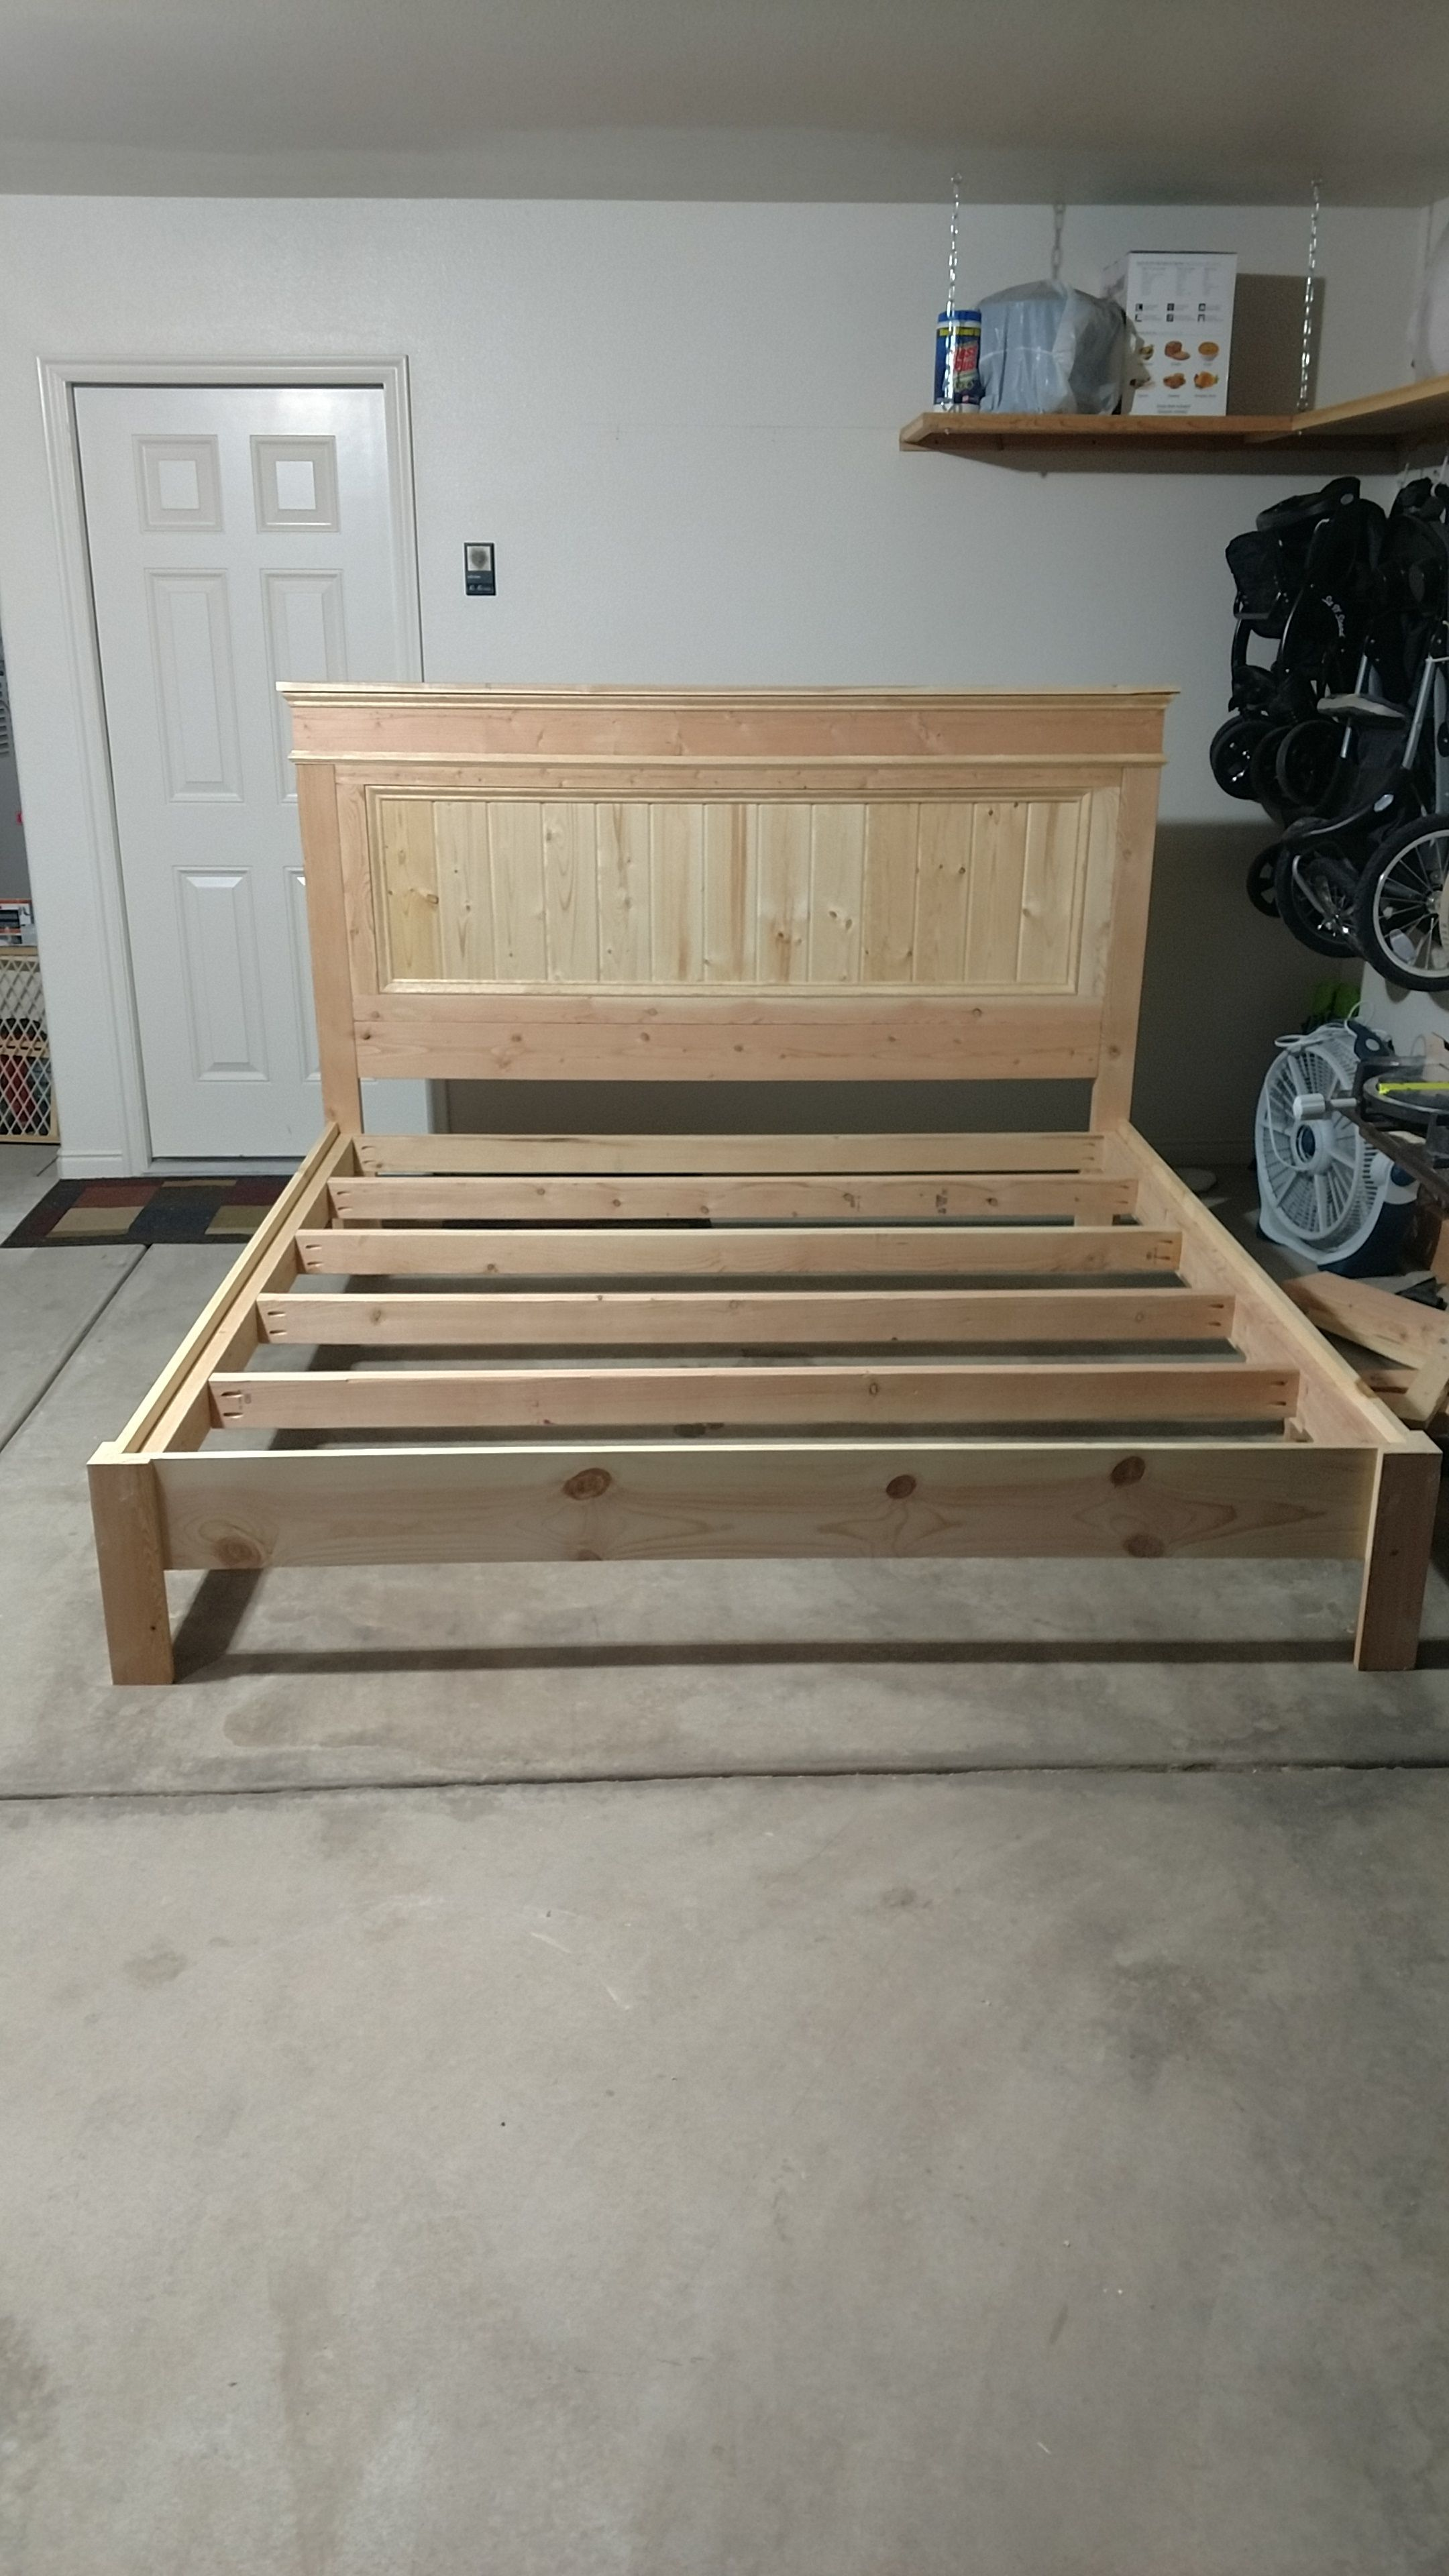 Ana White King Bed Frame DIY Projects Diy king bed